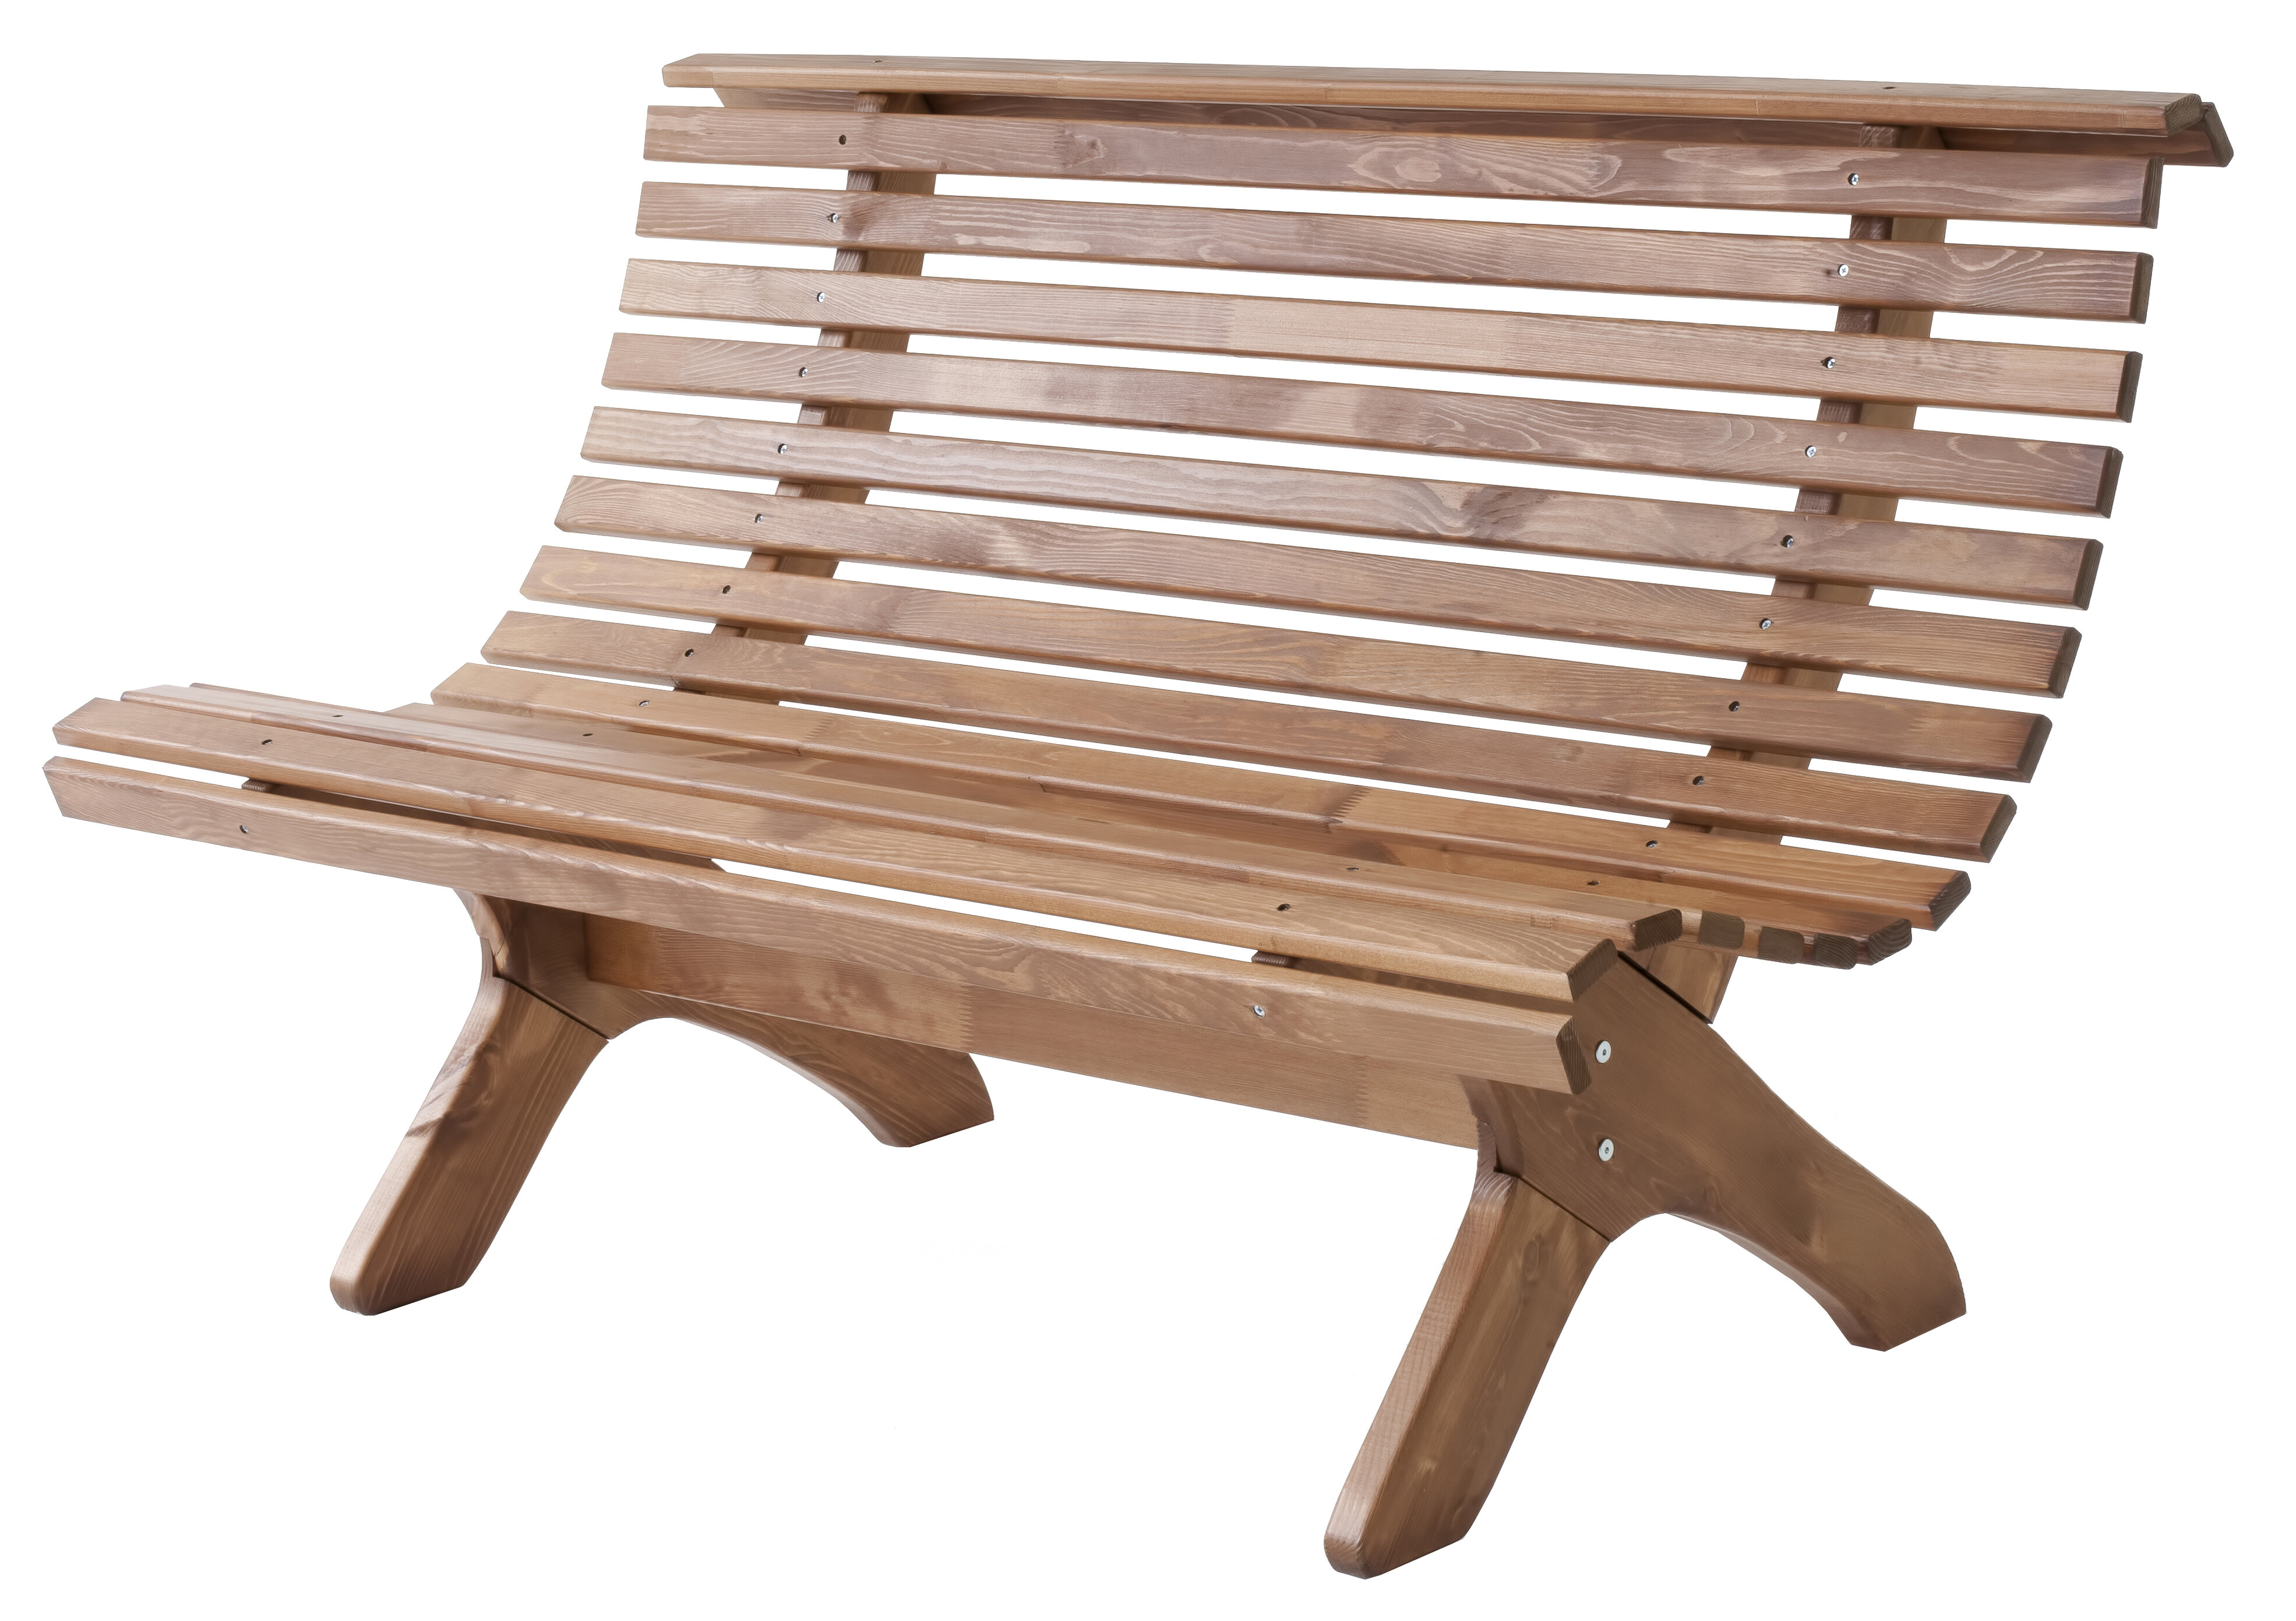 Pleasant Oluna Wooden Bench Pdpeps Interior Chair Design Pdpepsorg